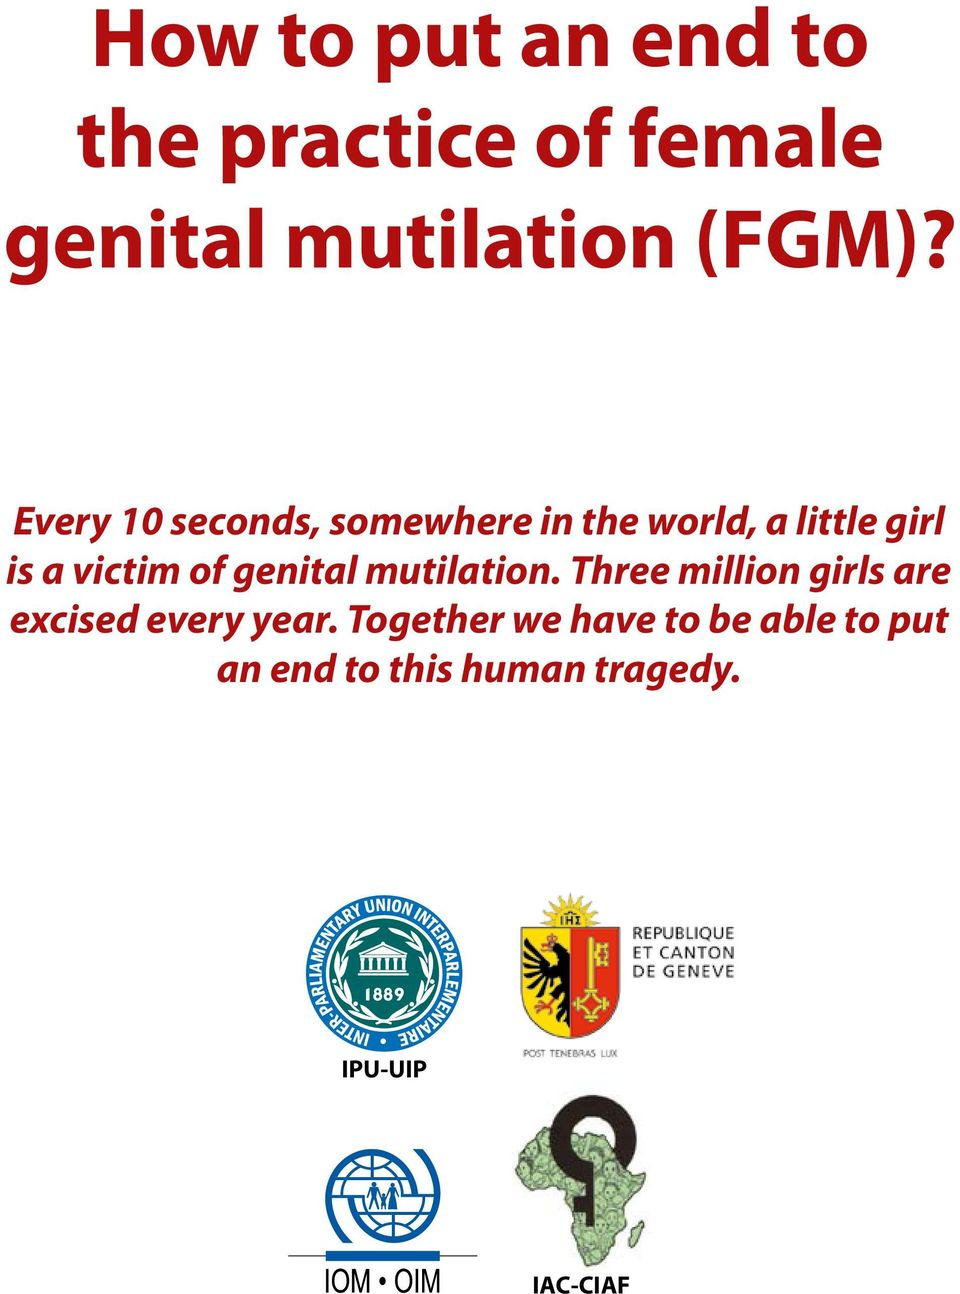 genital mutilation. Three million girls are excised every year.